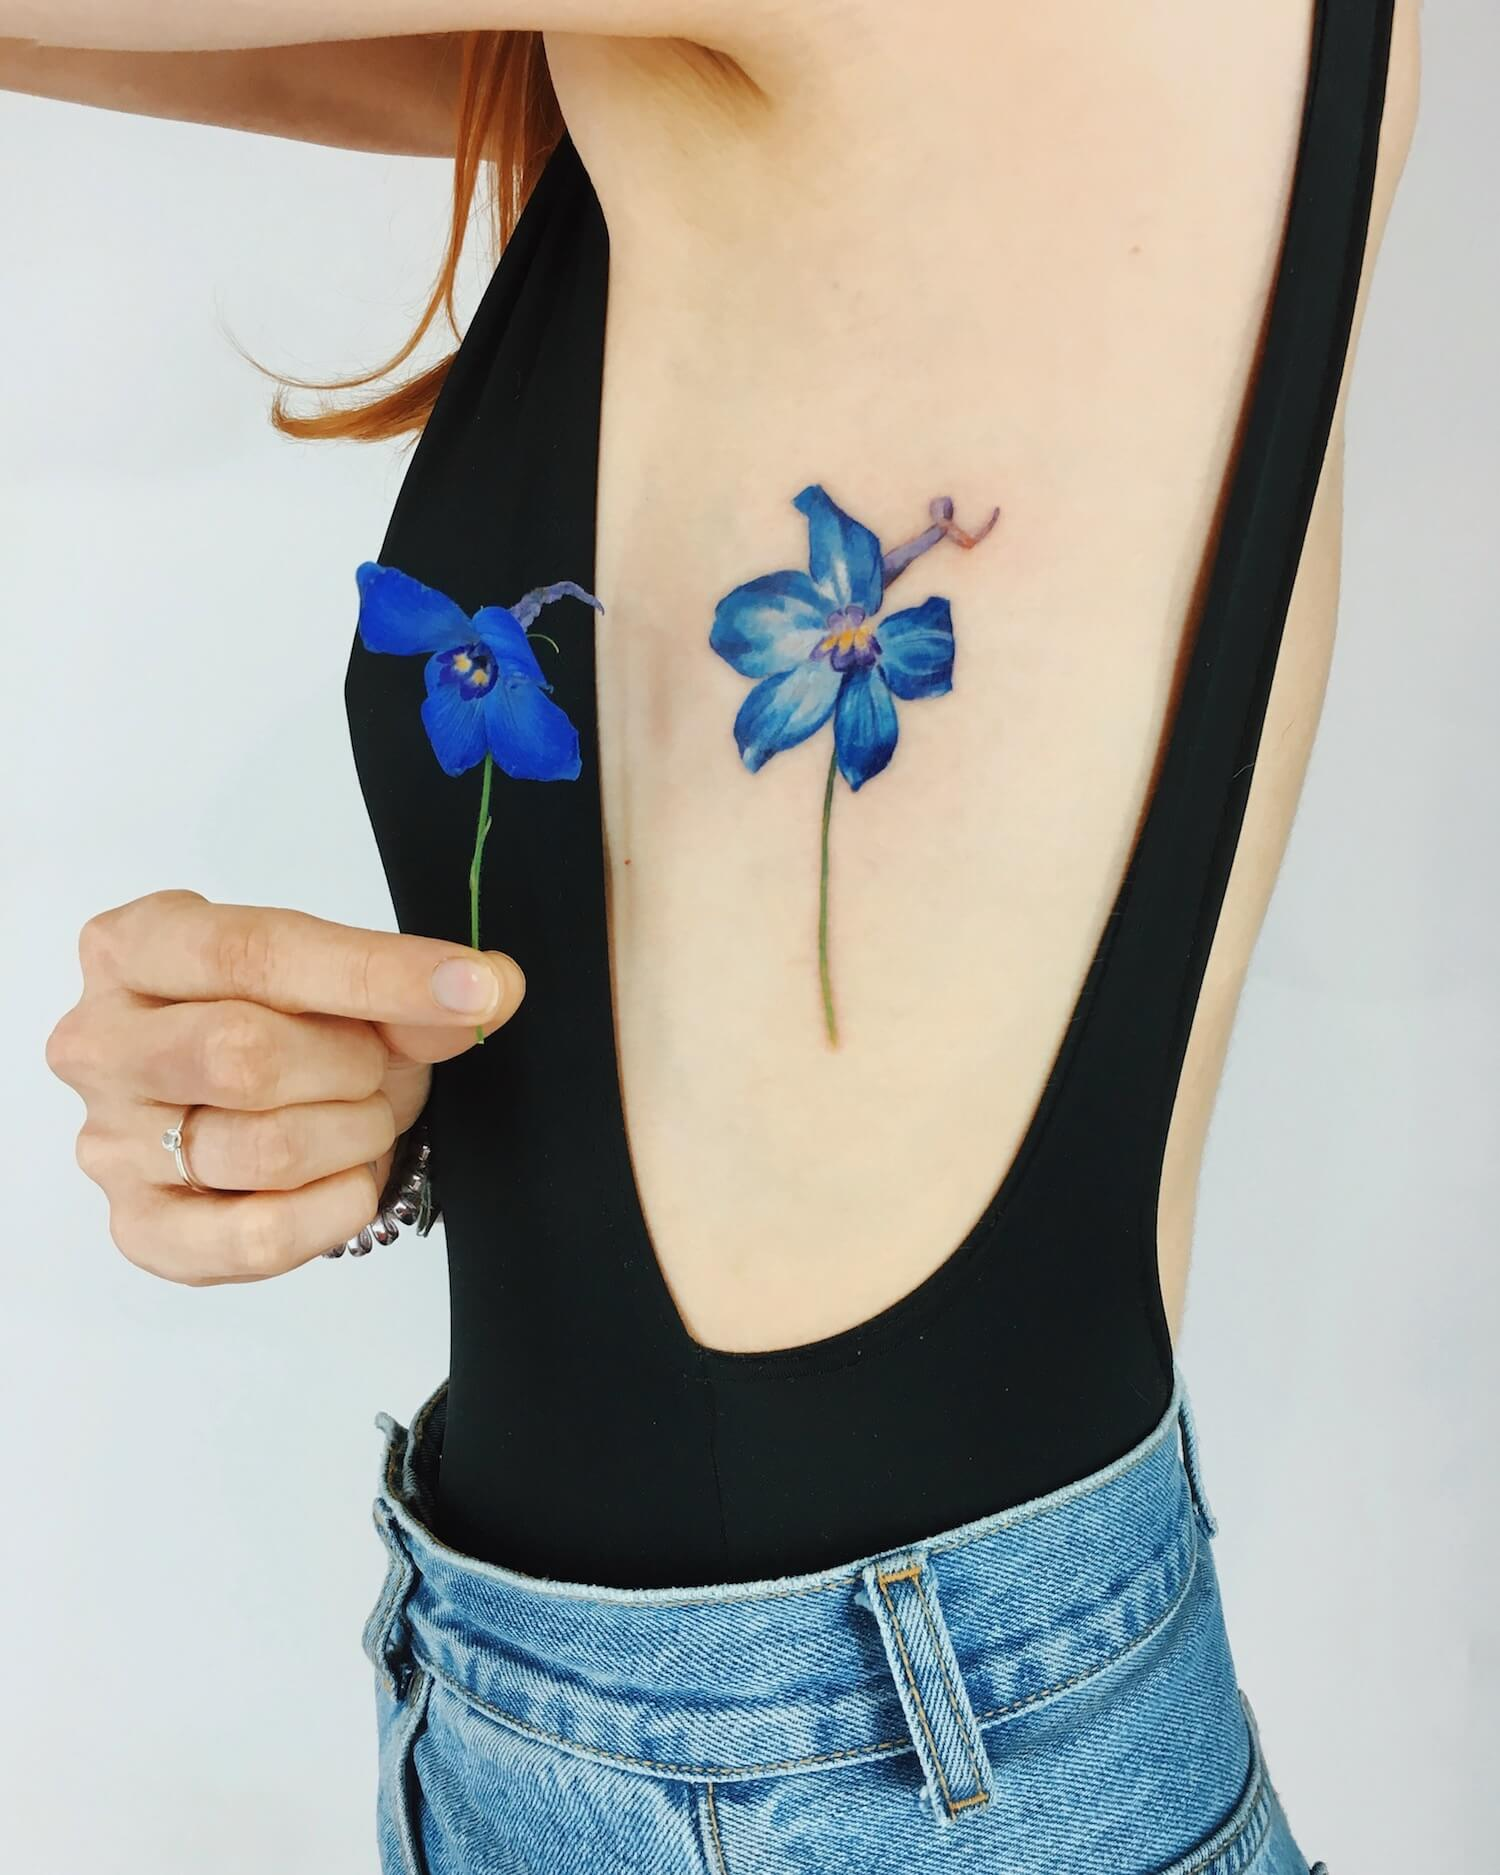 Flower tattoo on arm by Rit Kit